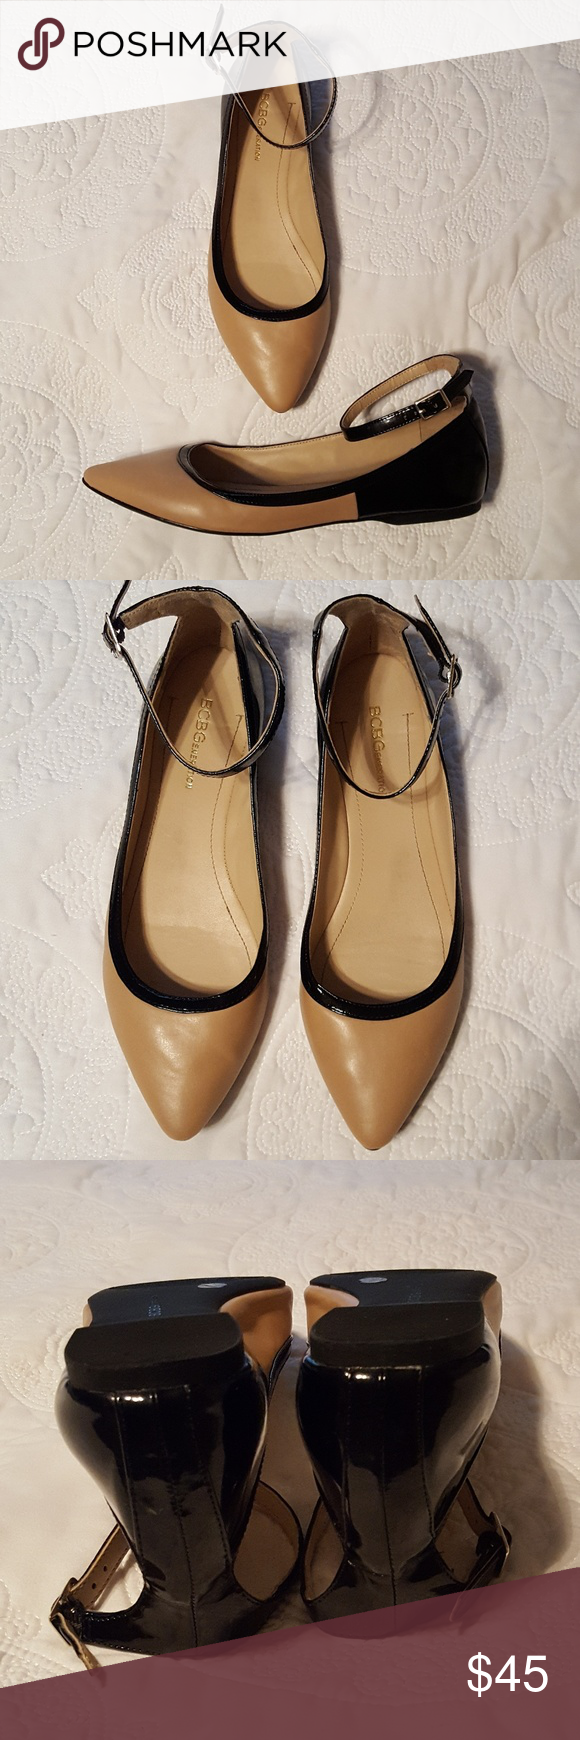 "BCBGeneration Ankle Strap ""Malinda"" Flats Perfect condition! Tan and Black patent ankle strap Flats. Pointy toe. Silver Buckle. Unbelievably comfortable! BCBGeneration Shoes Flats & Loafers"